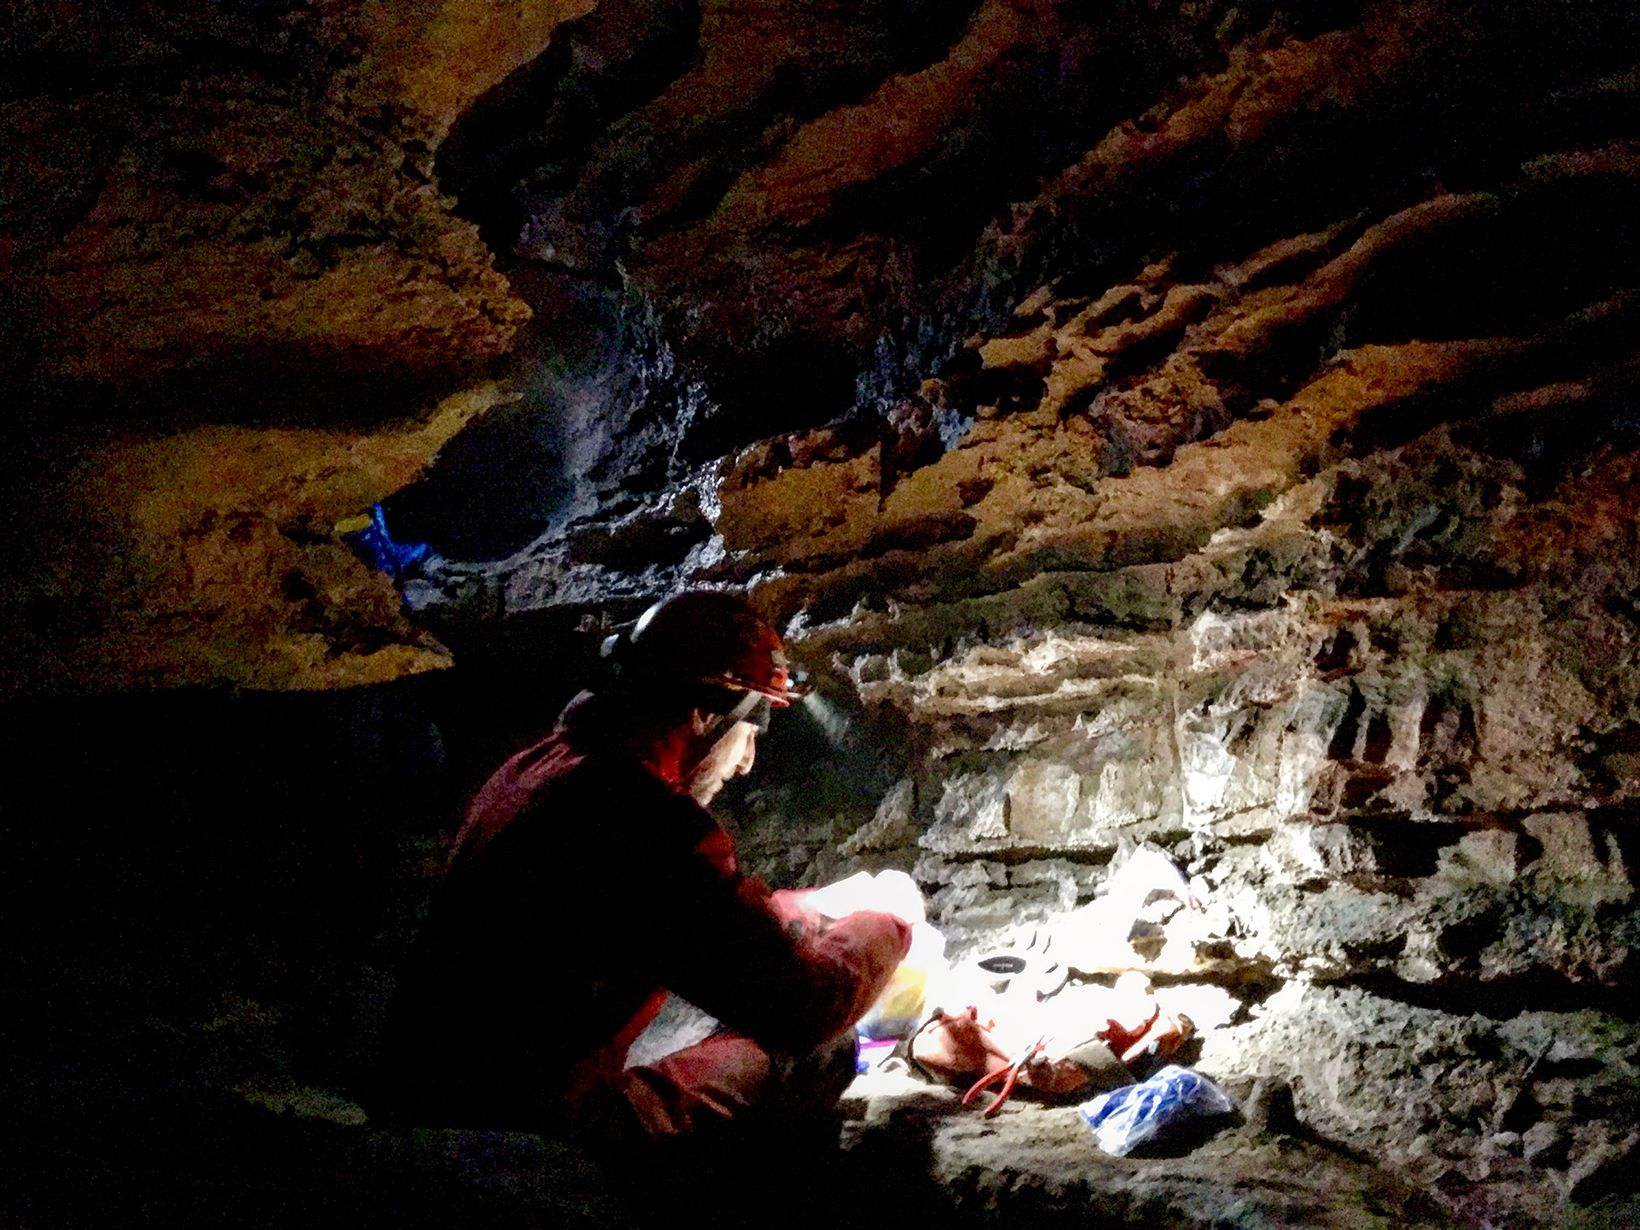 A man in an orange jumpsuit and hard hat crouches in a low cave preparing materials for a survey of the cave's bats. He uses his hat's headlamp to illuminate the pile of materials in front of him.